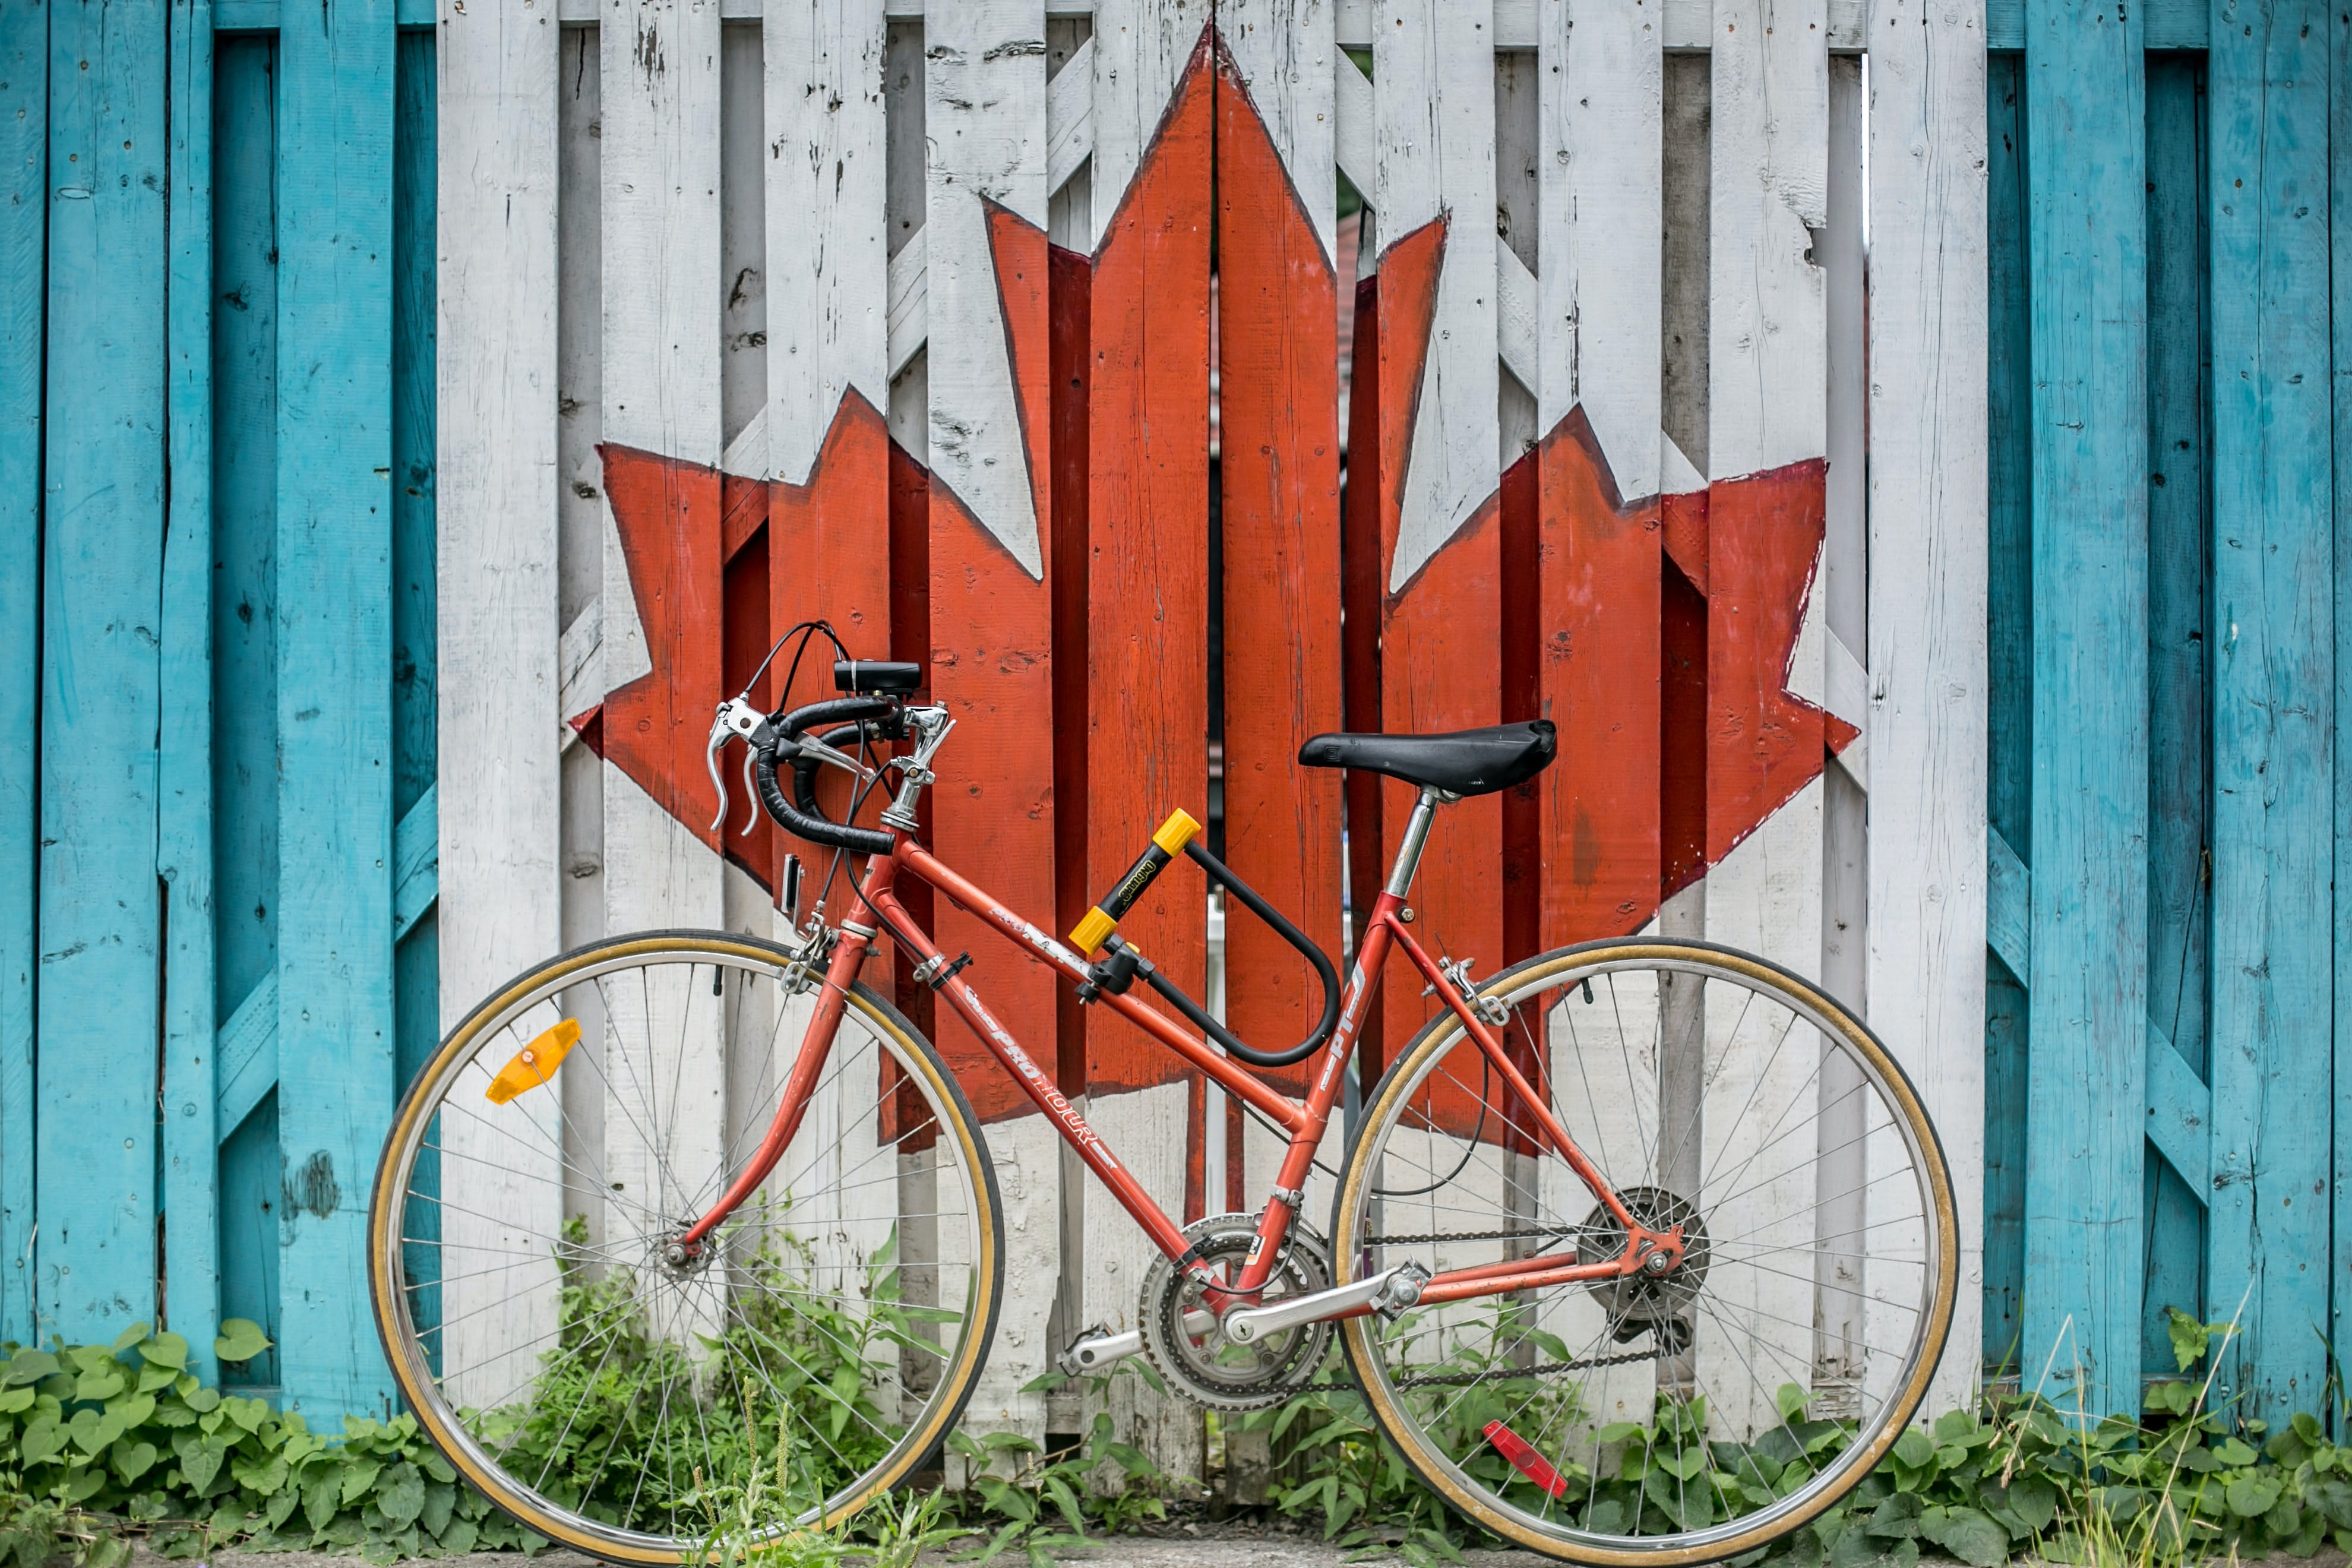 bicycle against a fence